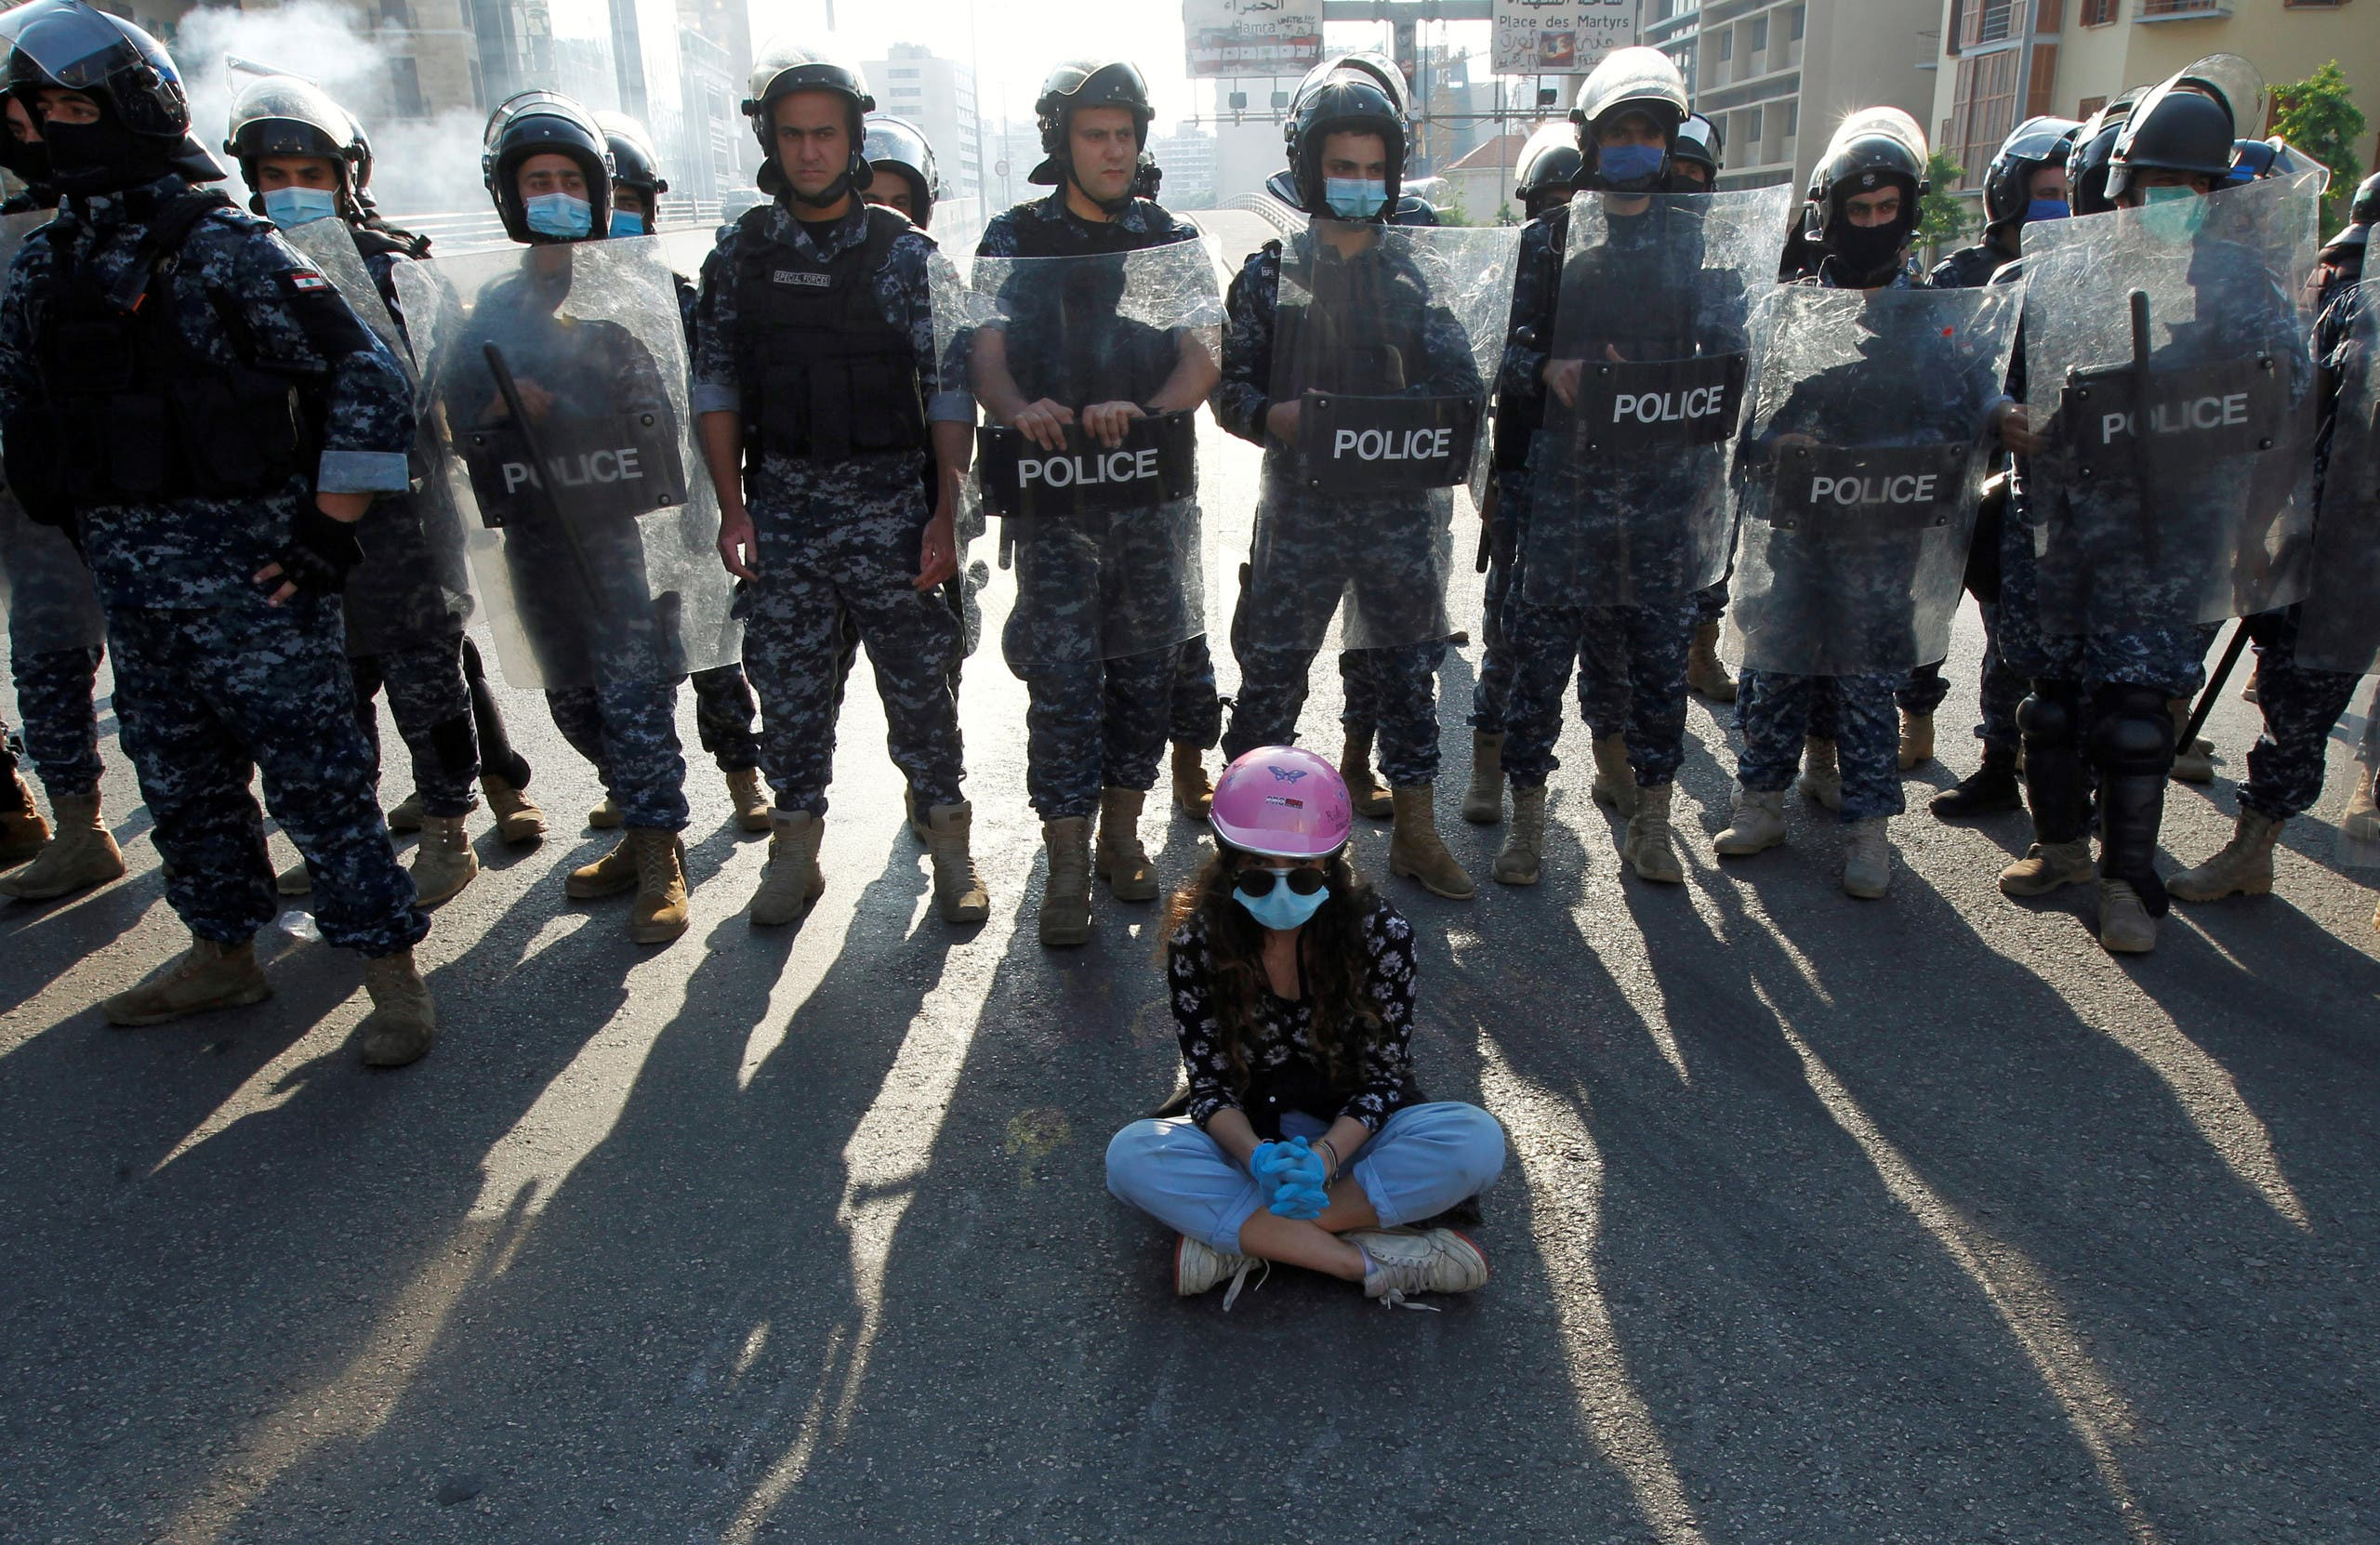 A demonstrator sits on the ground in front of Lebanese police officers during a protest against growing economic hardship in Beirut, Lebanon April 28, 2020. (Reuters)